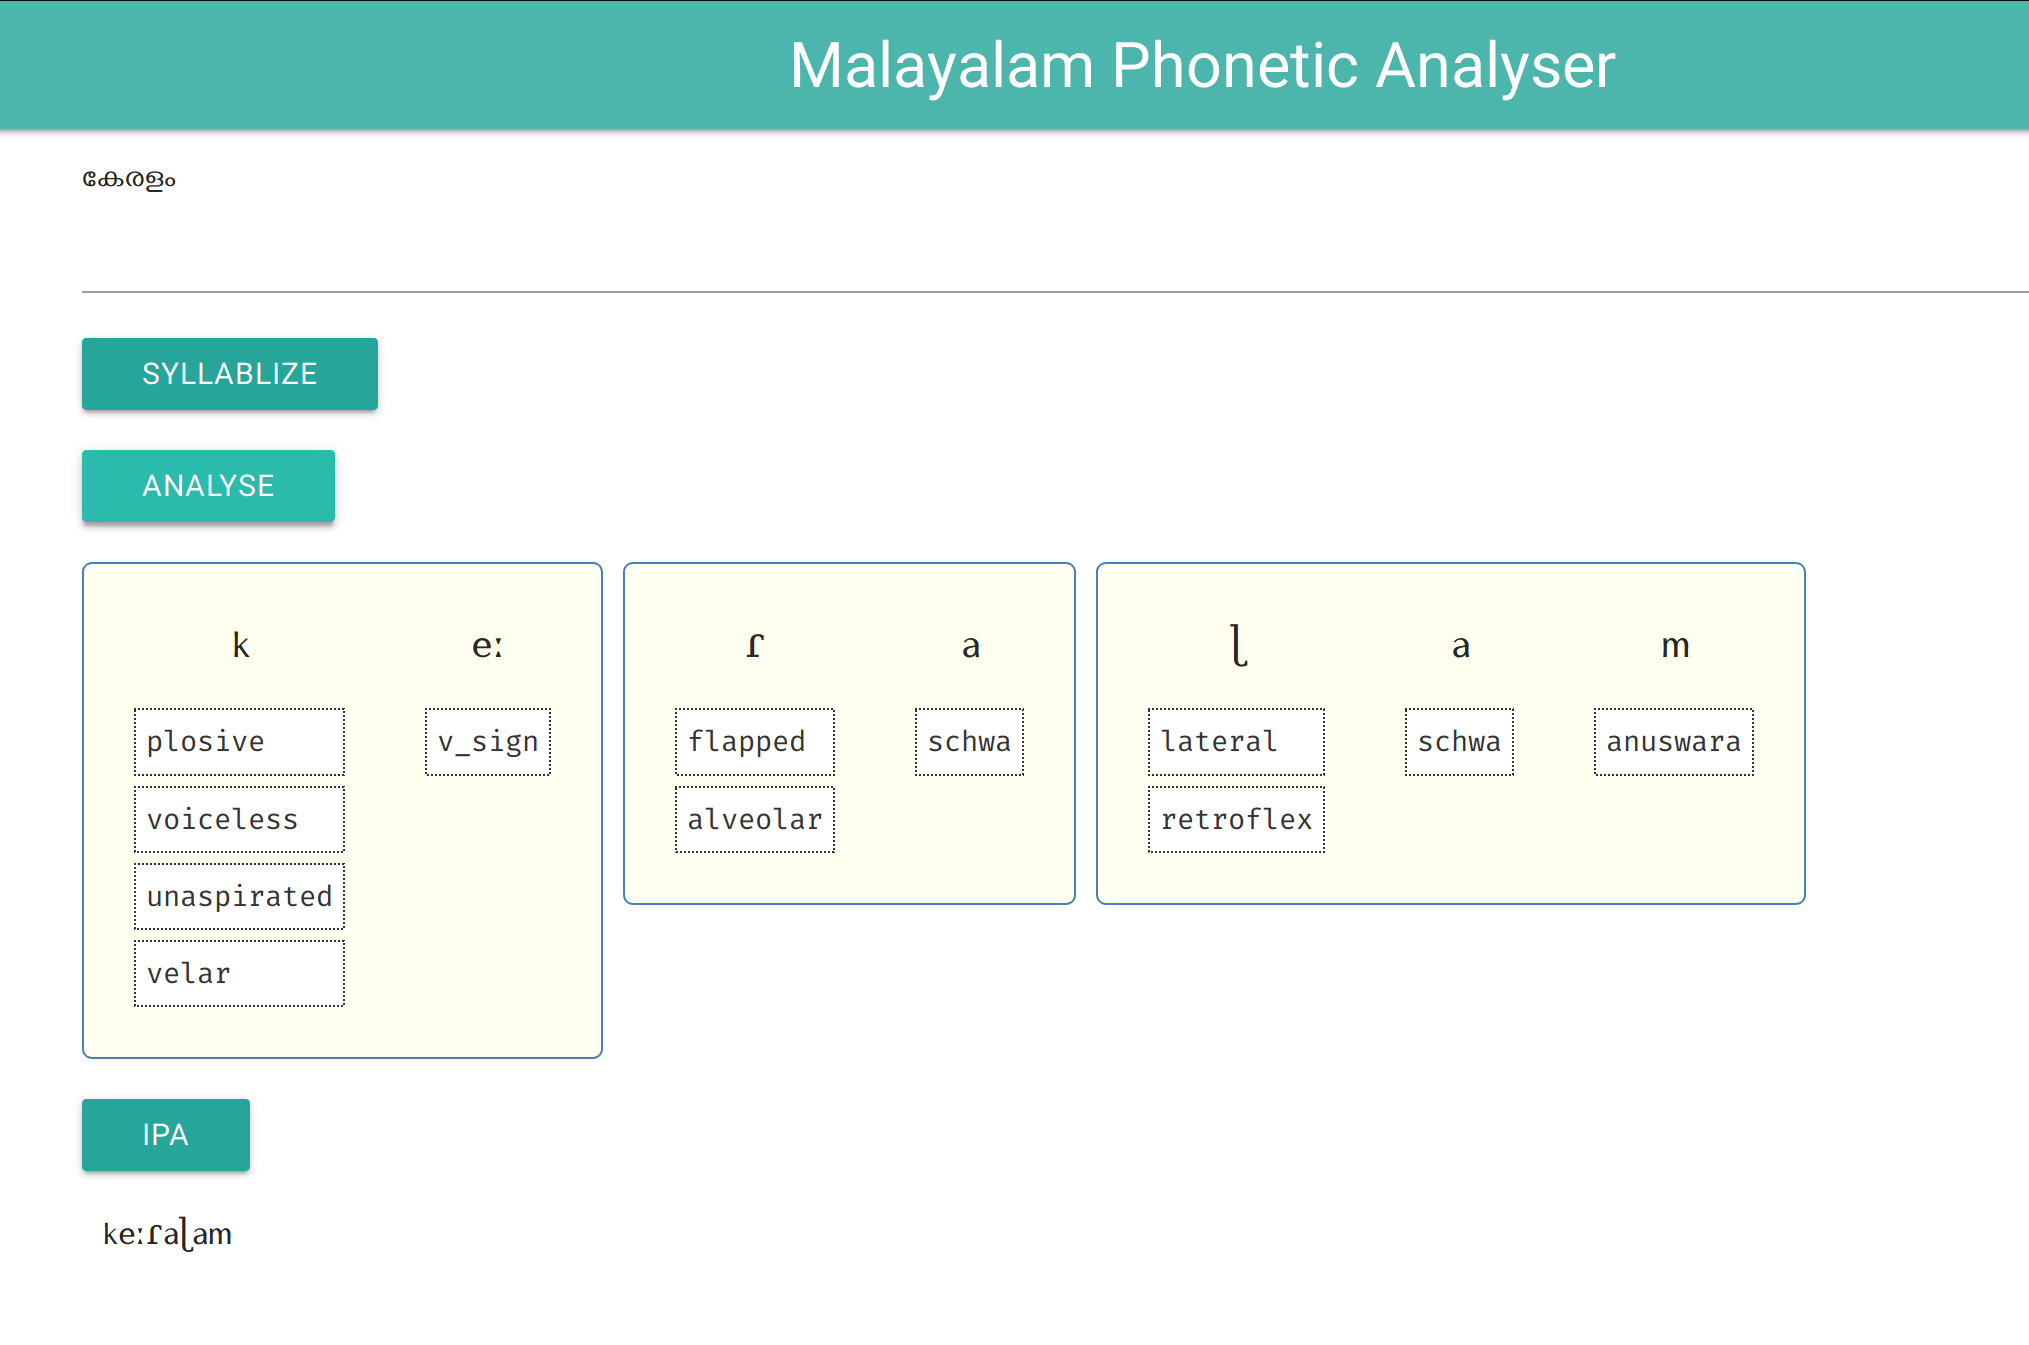 Phonetic description of Malayalam consonants